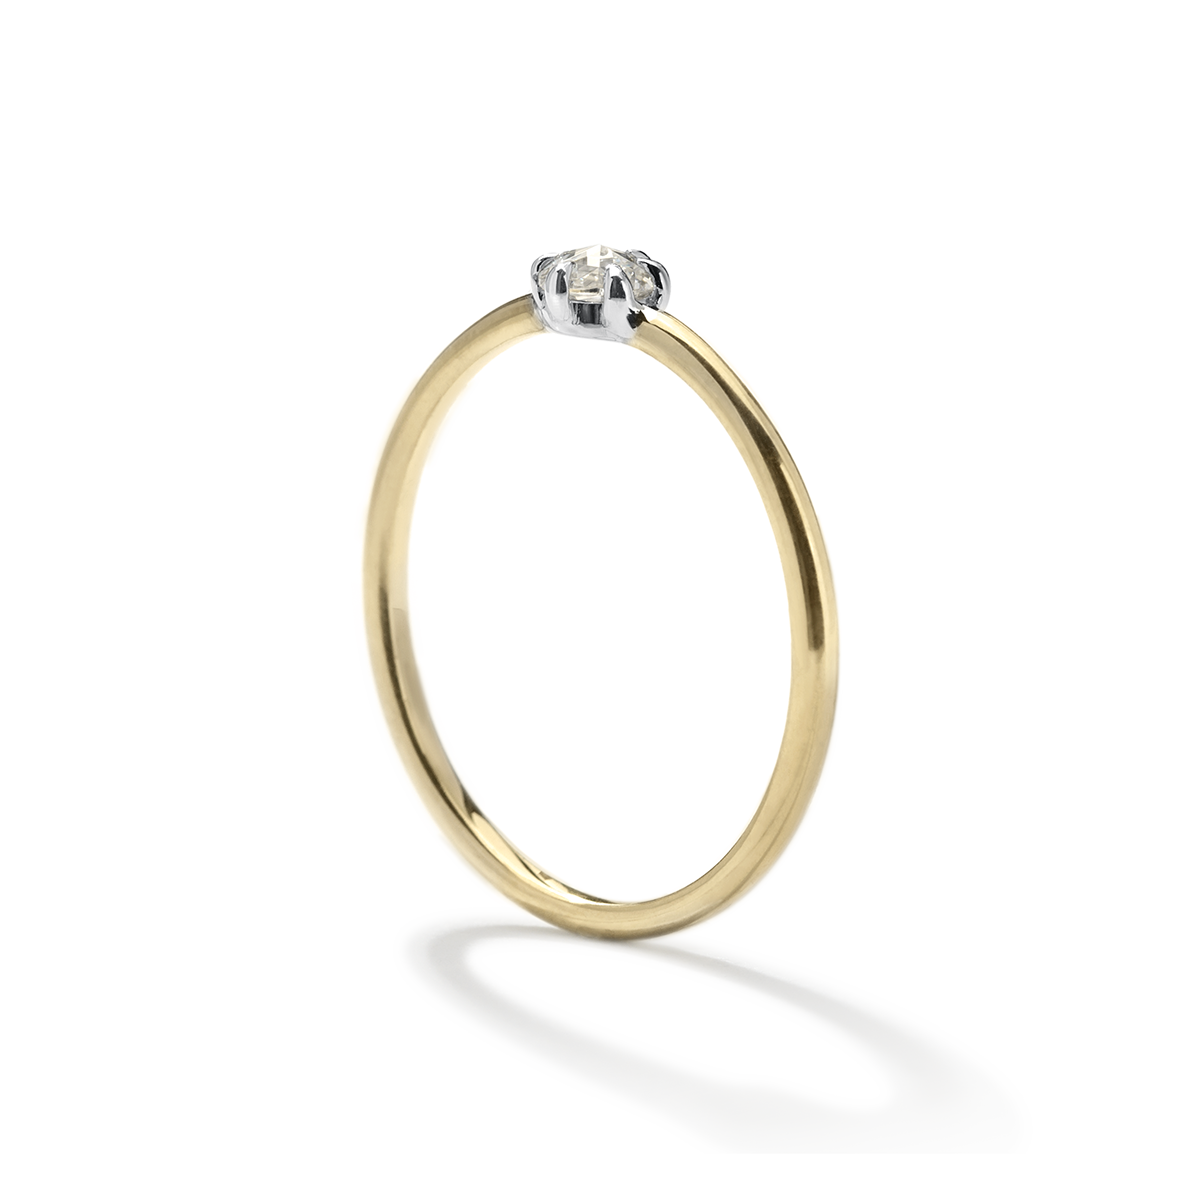 Two tone white and yellow gold ring